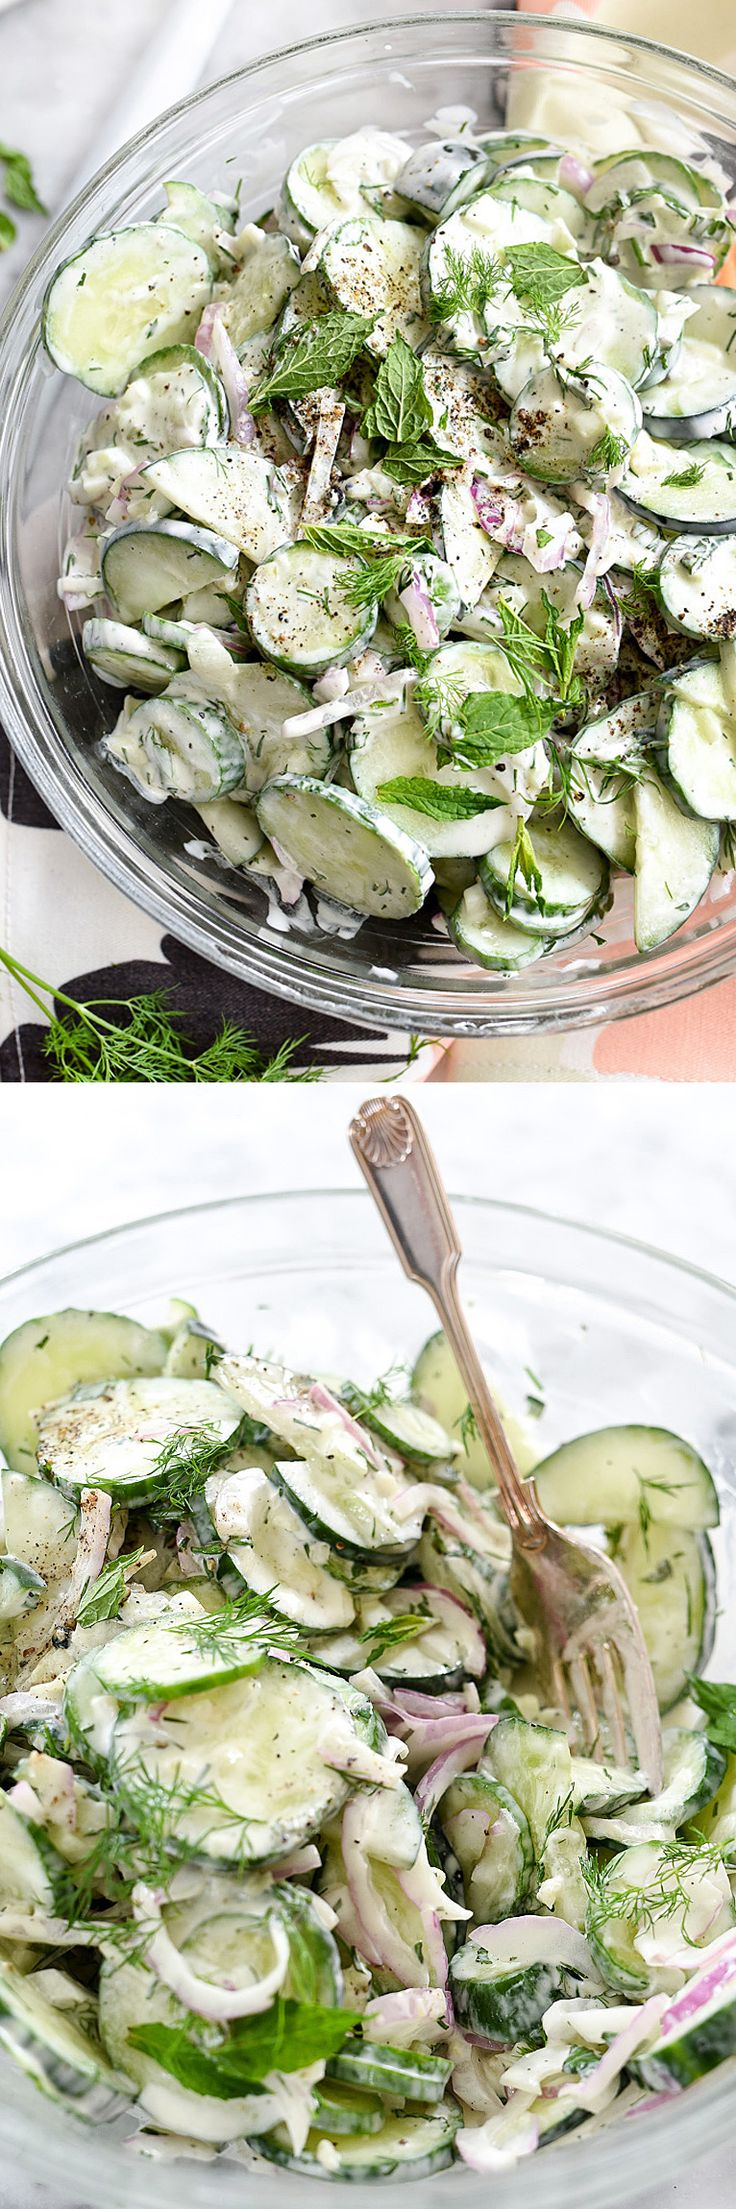 Creamy Yogurt Cucumber Salad by foodiecrush: Refreshing. #Salad #Cucumber #LIght #Healthy